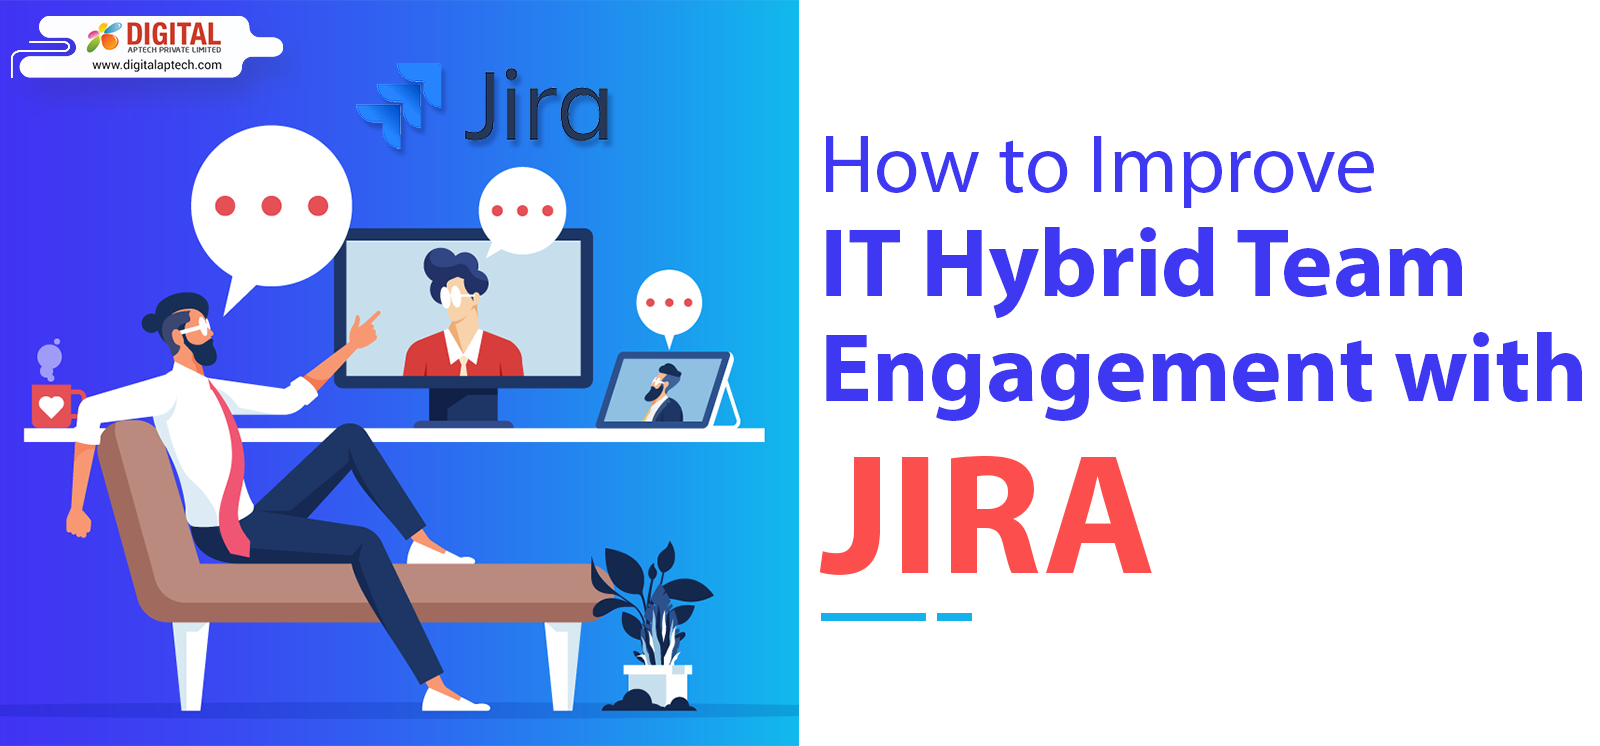 How to Improve IT Hybrid Team Engagement with JIRA